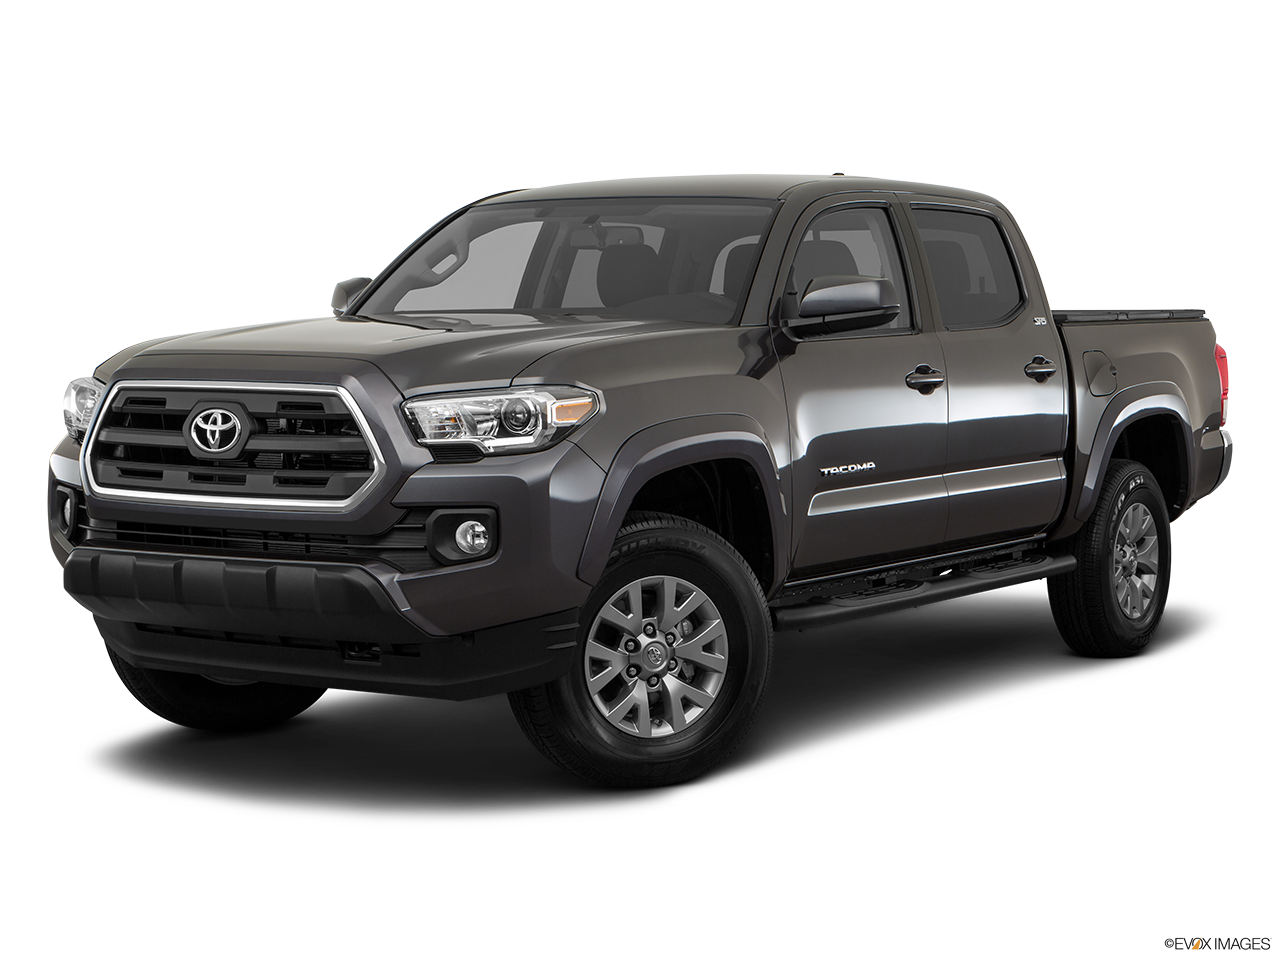 Test Drive A 2017 Toyota Tacoma at Moss Bros Toyota of Moreno Valley in Moreno Valley